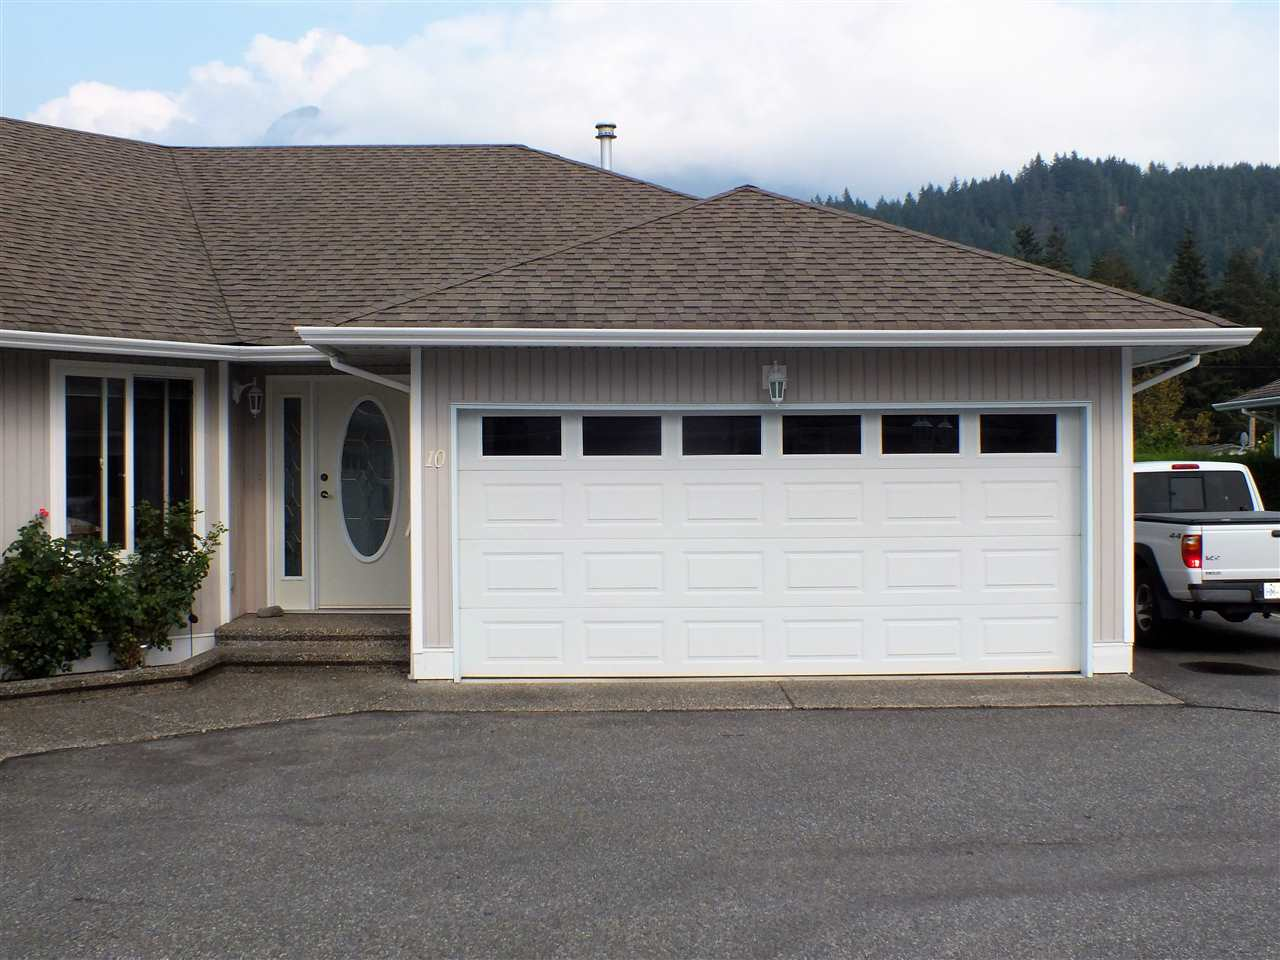 Townhouse at 10 659 DOUGLAS STREET, Unit 10, Hope, British Columbia. Image 1